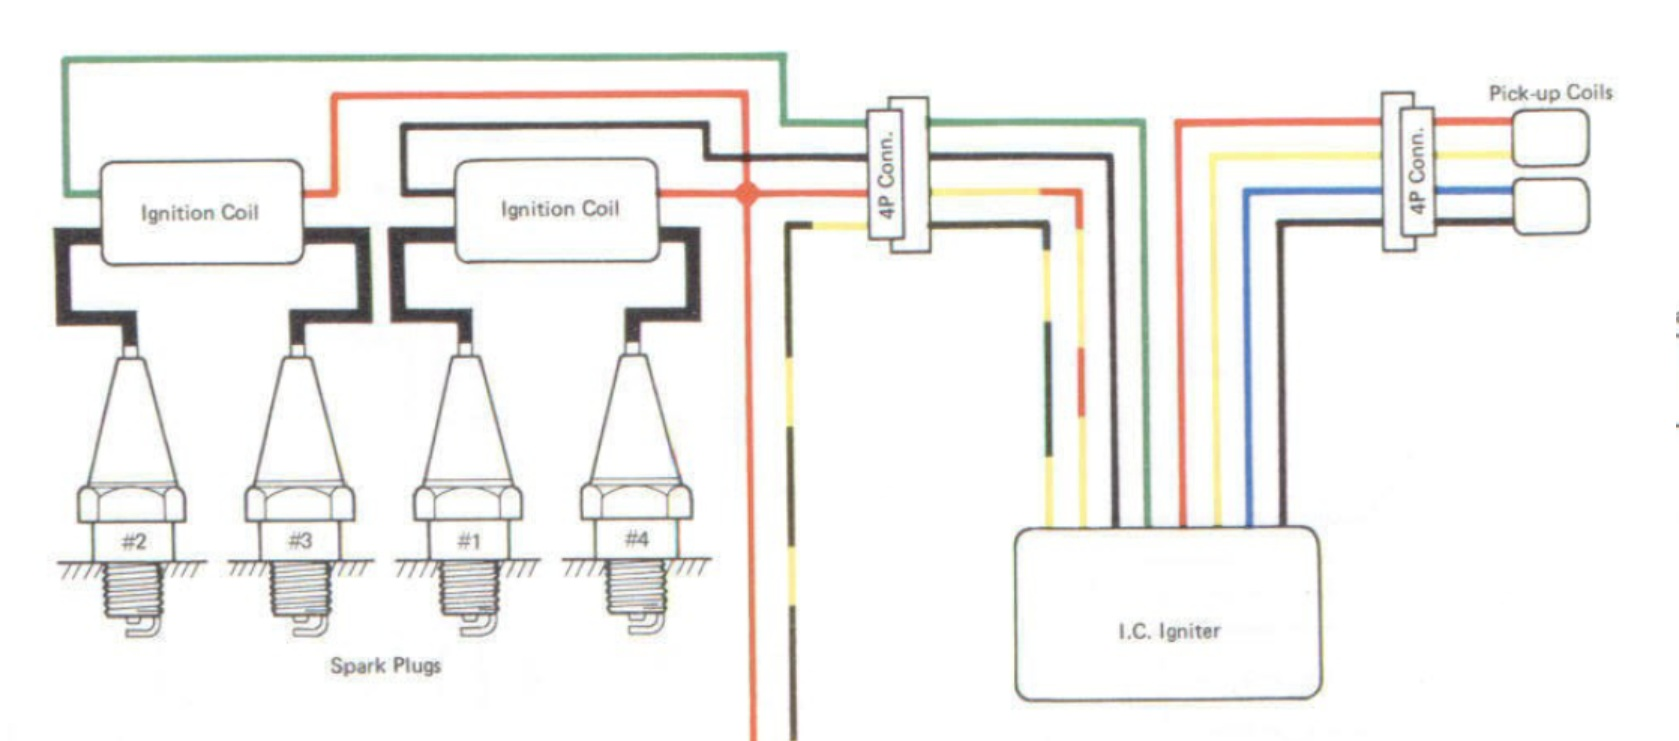 ignition wiring diagram dyna z1 with Dyna Ignition Coils Wiring Diagram For Kz1000 Mk2 1980 on Naze32 Flight Controller Wiring Diagram further 604873 Newer Sportbike Controls Swap further 562477 Noobie Kz650 Ignition Andor Coil Questions additionally Dyna Ignition Coils Wiring Diagram For Kz1000 Mk2 1980 in addition 532202 1979 Kz1000 Dyna Coil Wiring.